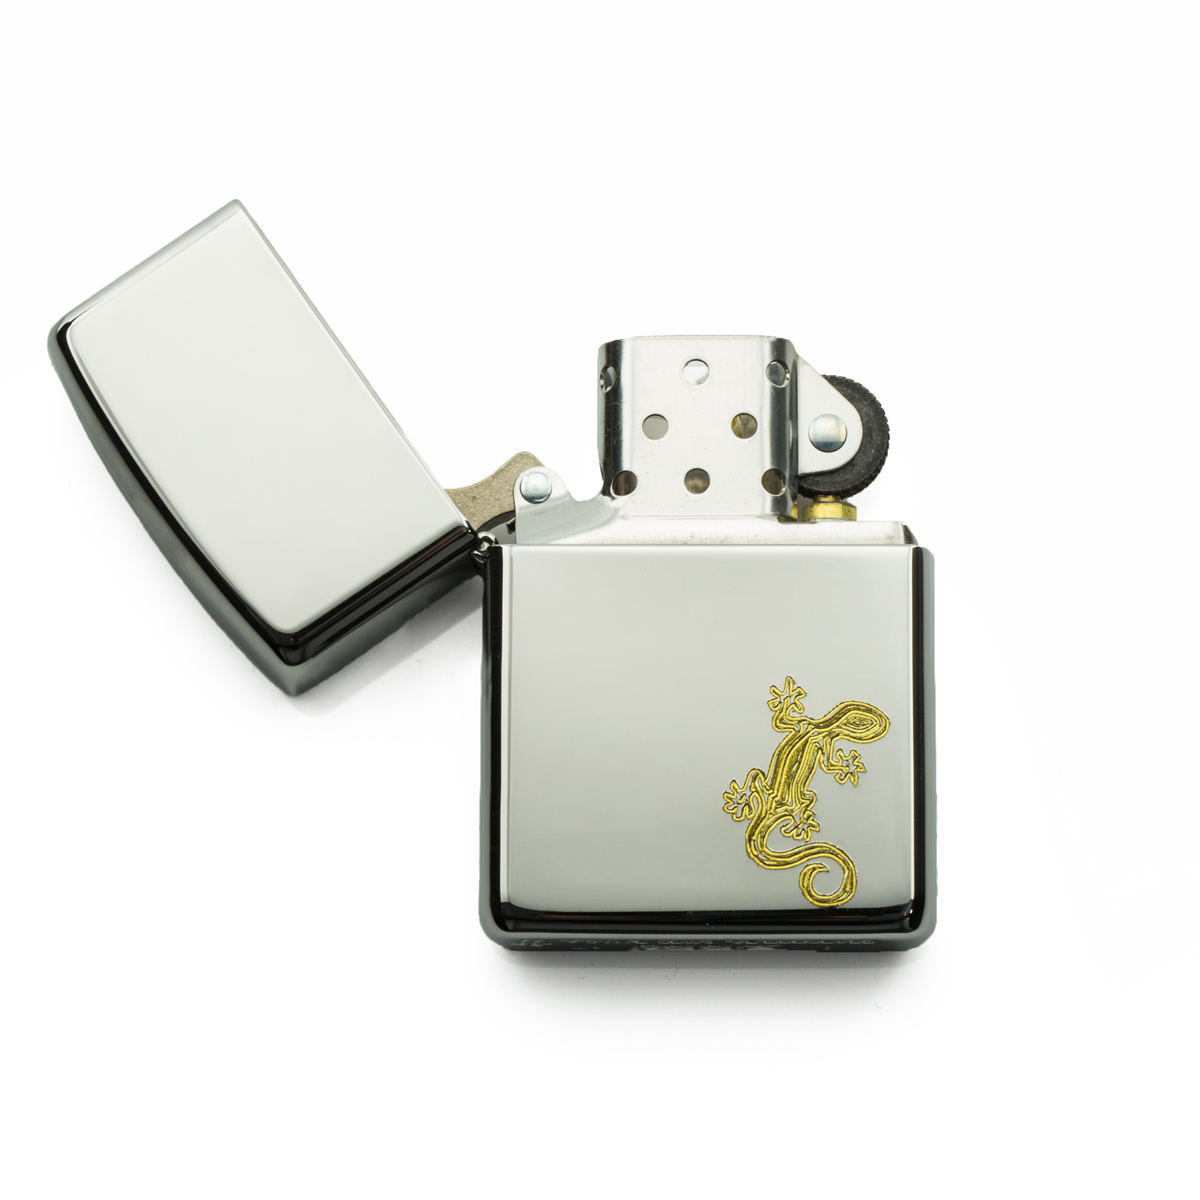 zippo-high-polish-chrome-khac-logo-lizard-than-lan-3